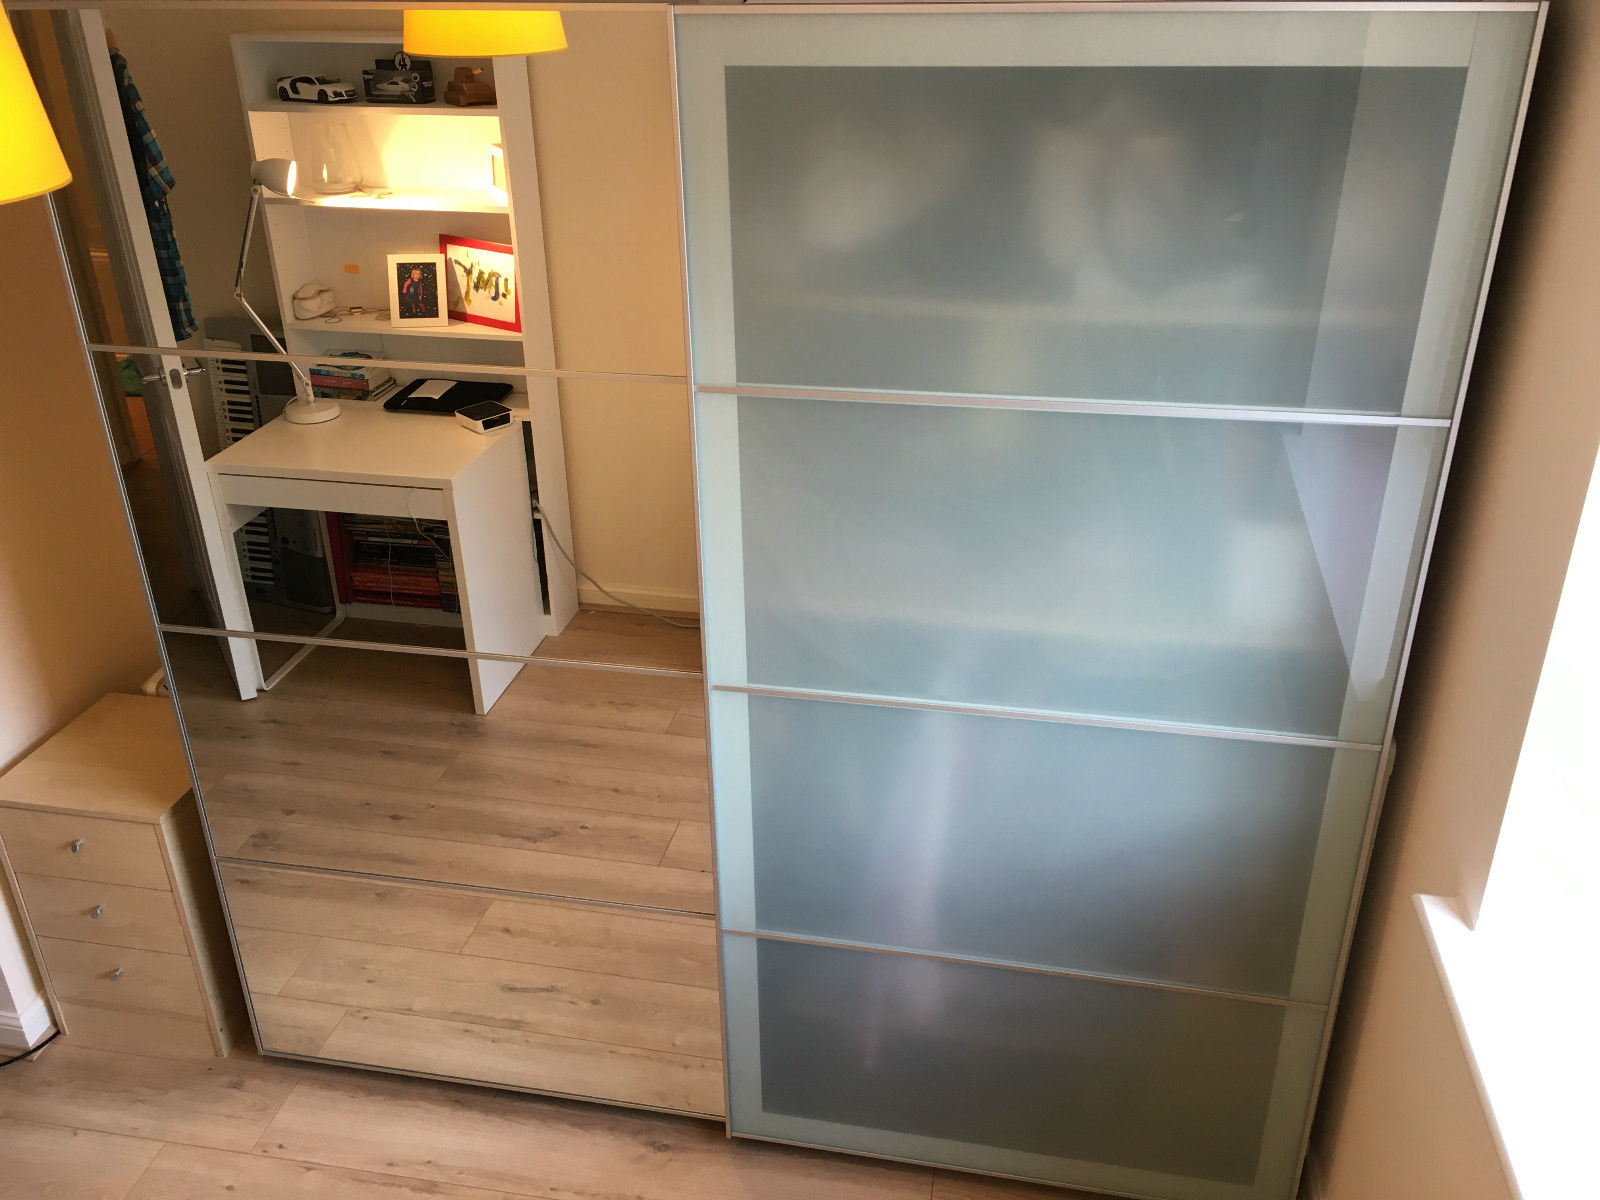 ikea-pax-double-wardrobe-with-mirror-sliding-doors-_57-1